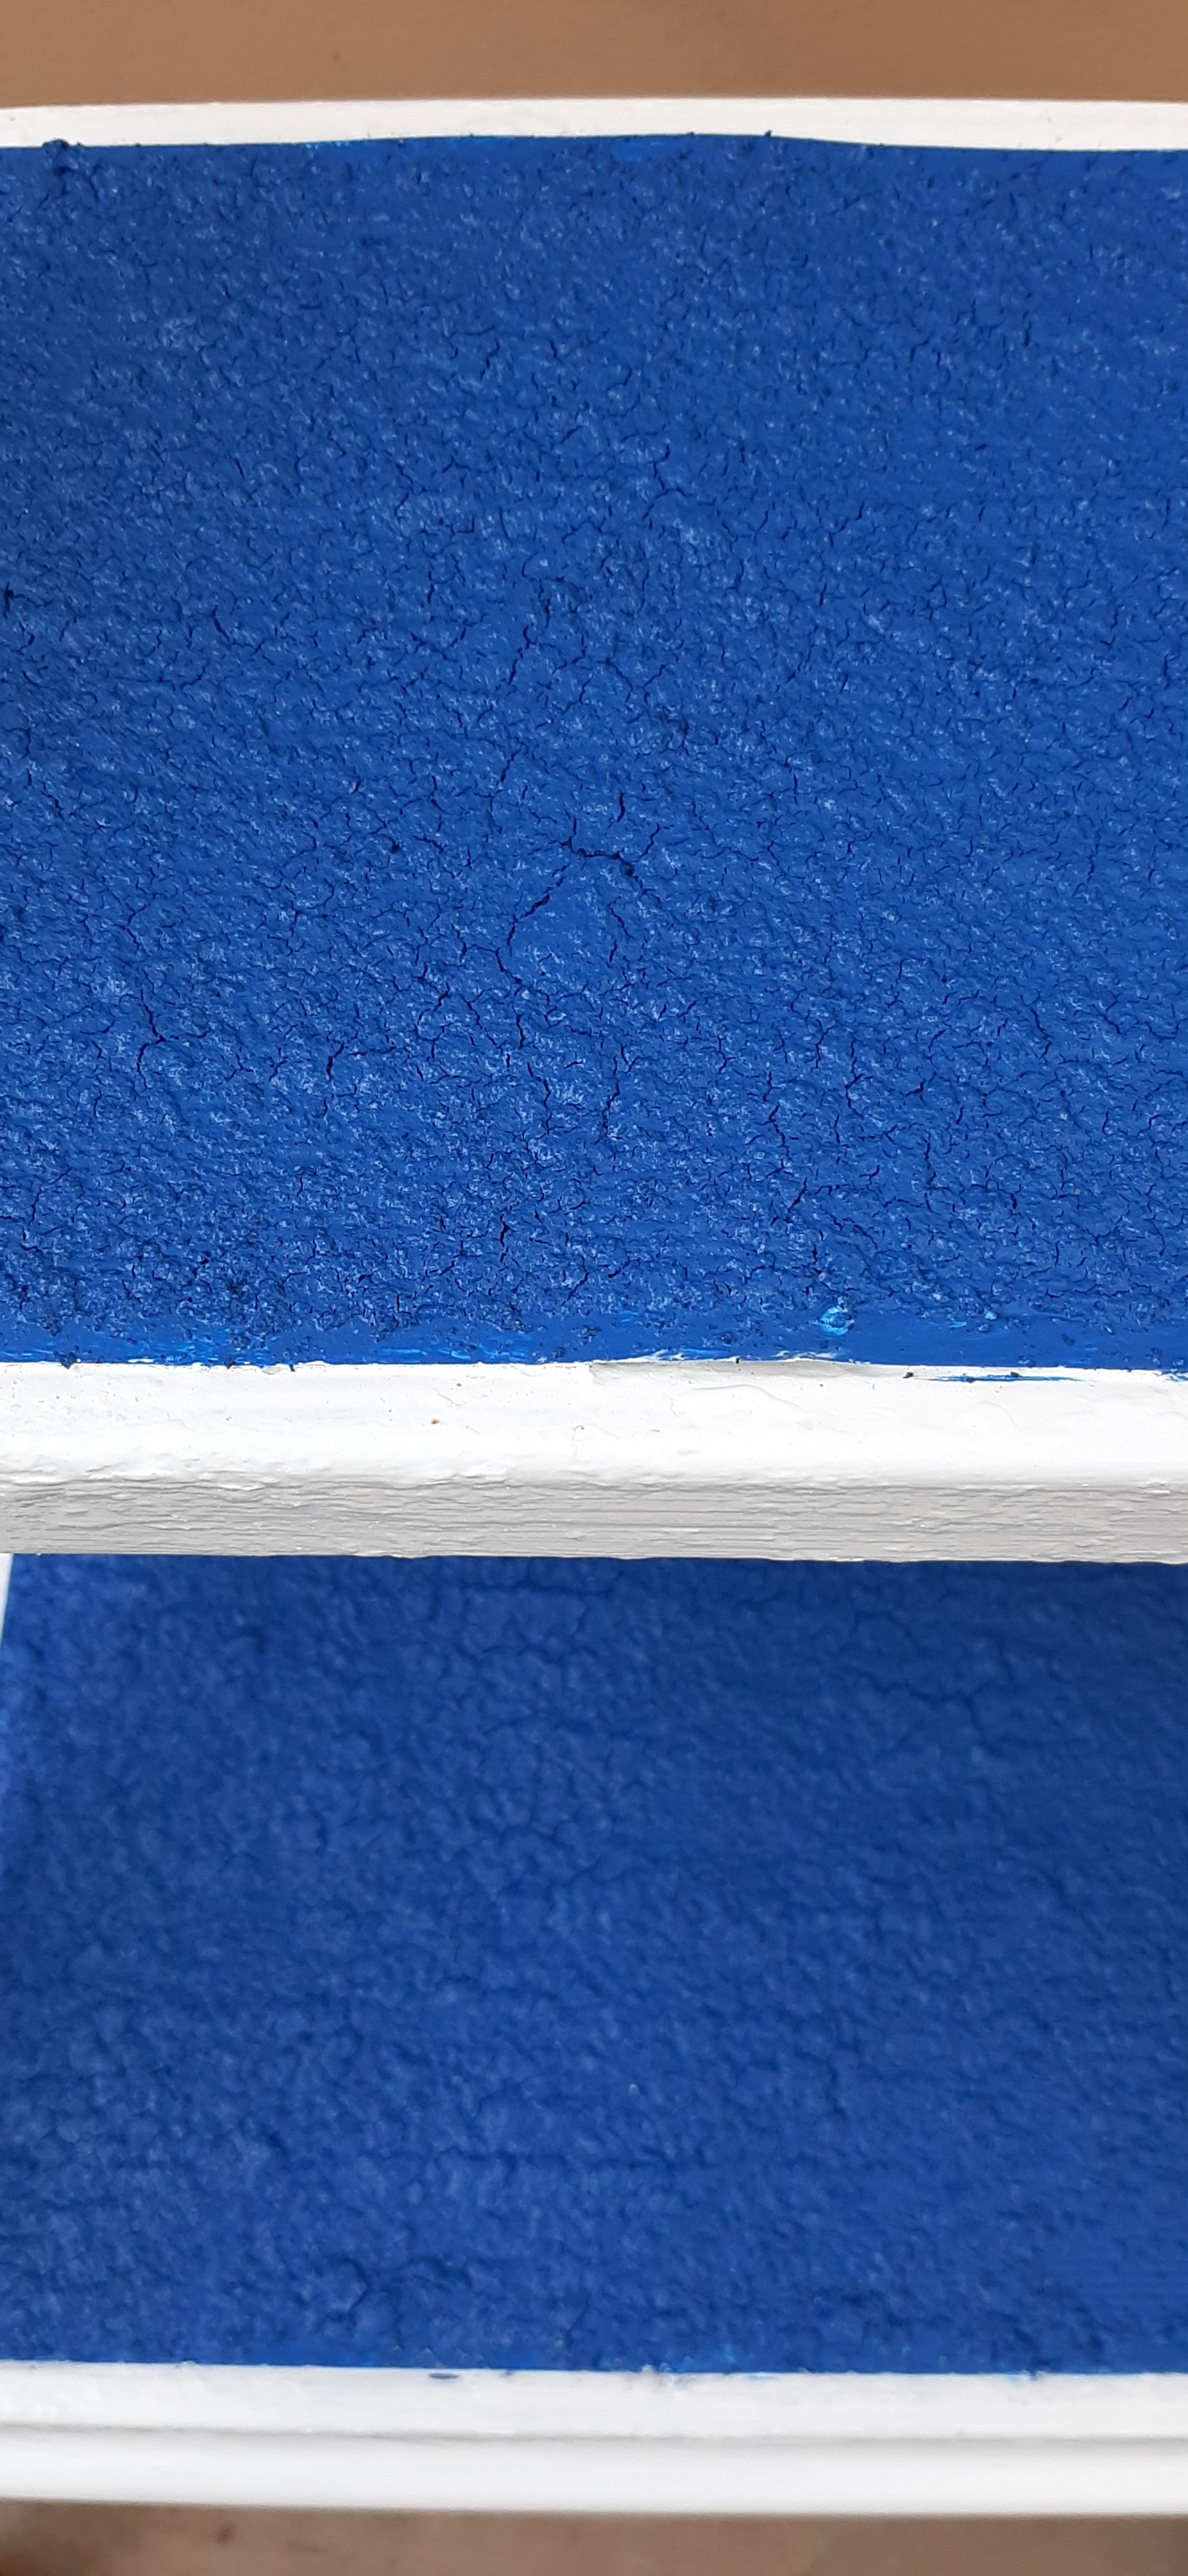 White Paint and Blue Tinted Non-Slip Rubber Step